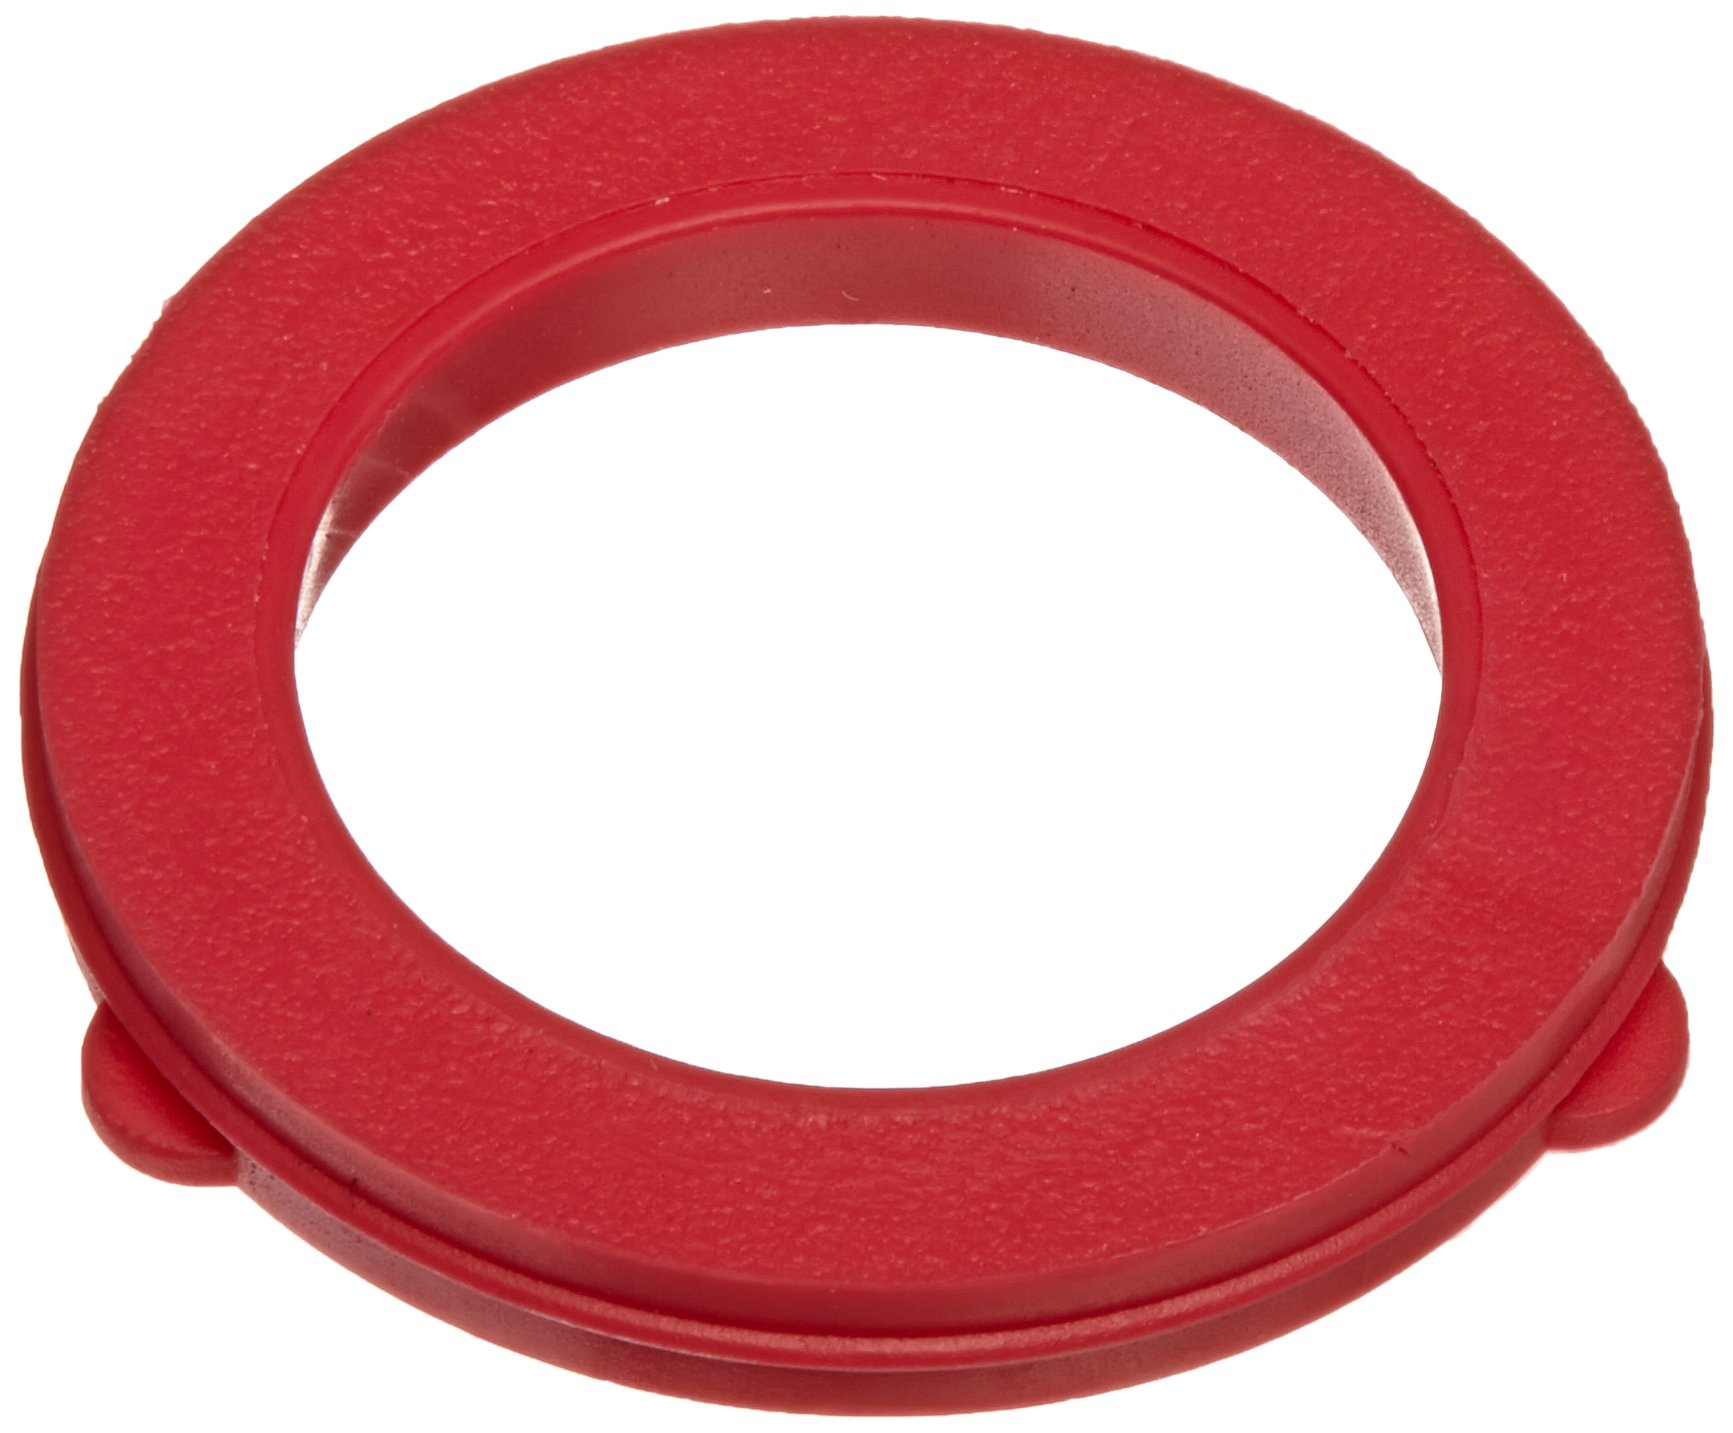 Dixon Valve & Coupling TVW7 Red Vinyl Tuff-Lite Washer for Garden Hose Fitting (Pack of 25) by Dixon Valve & Coupling